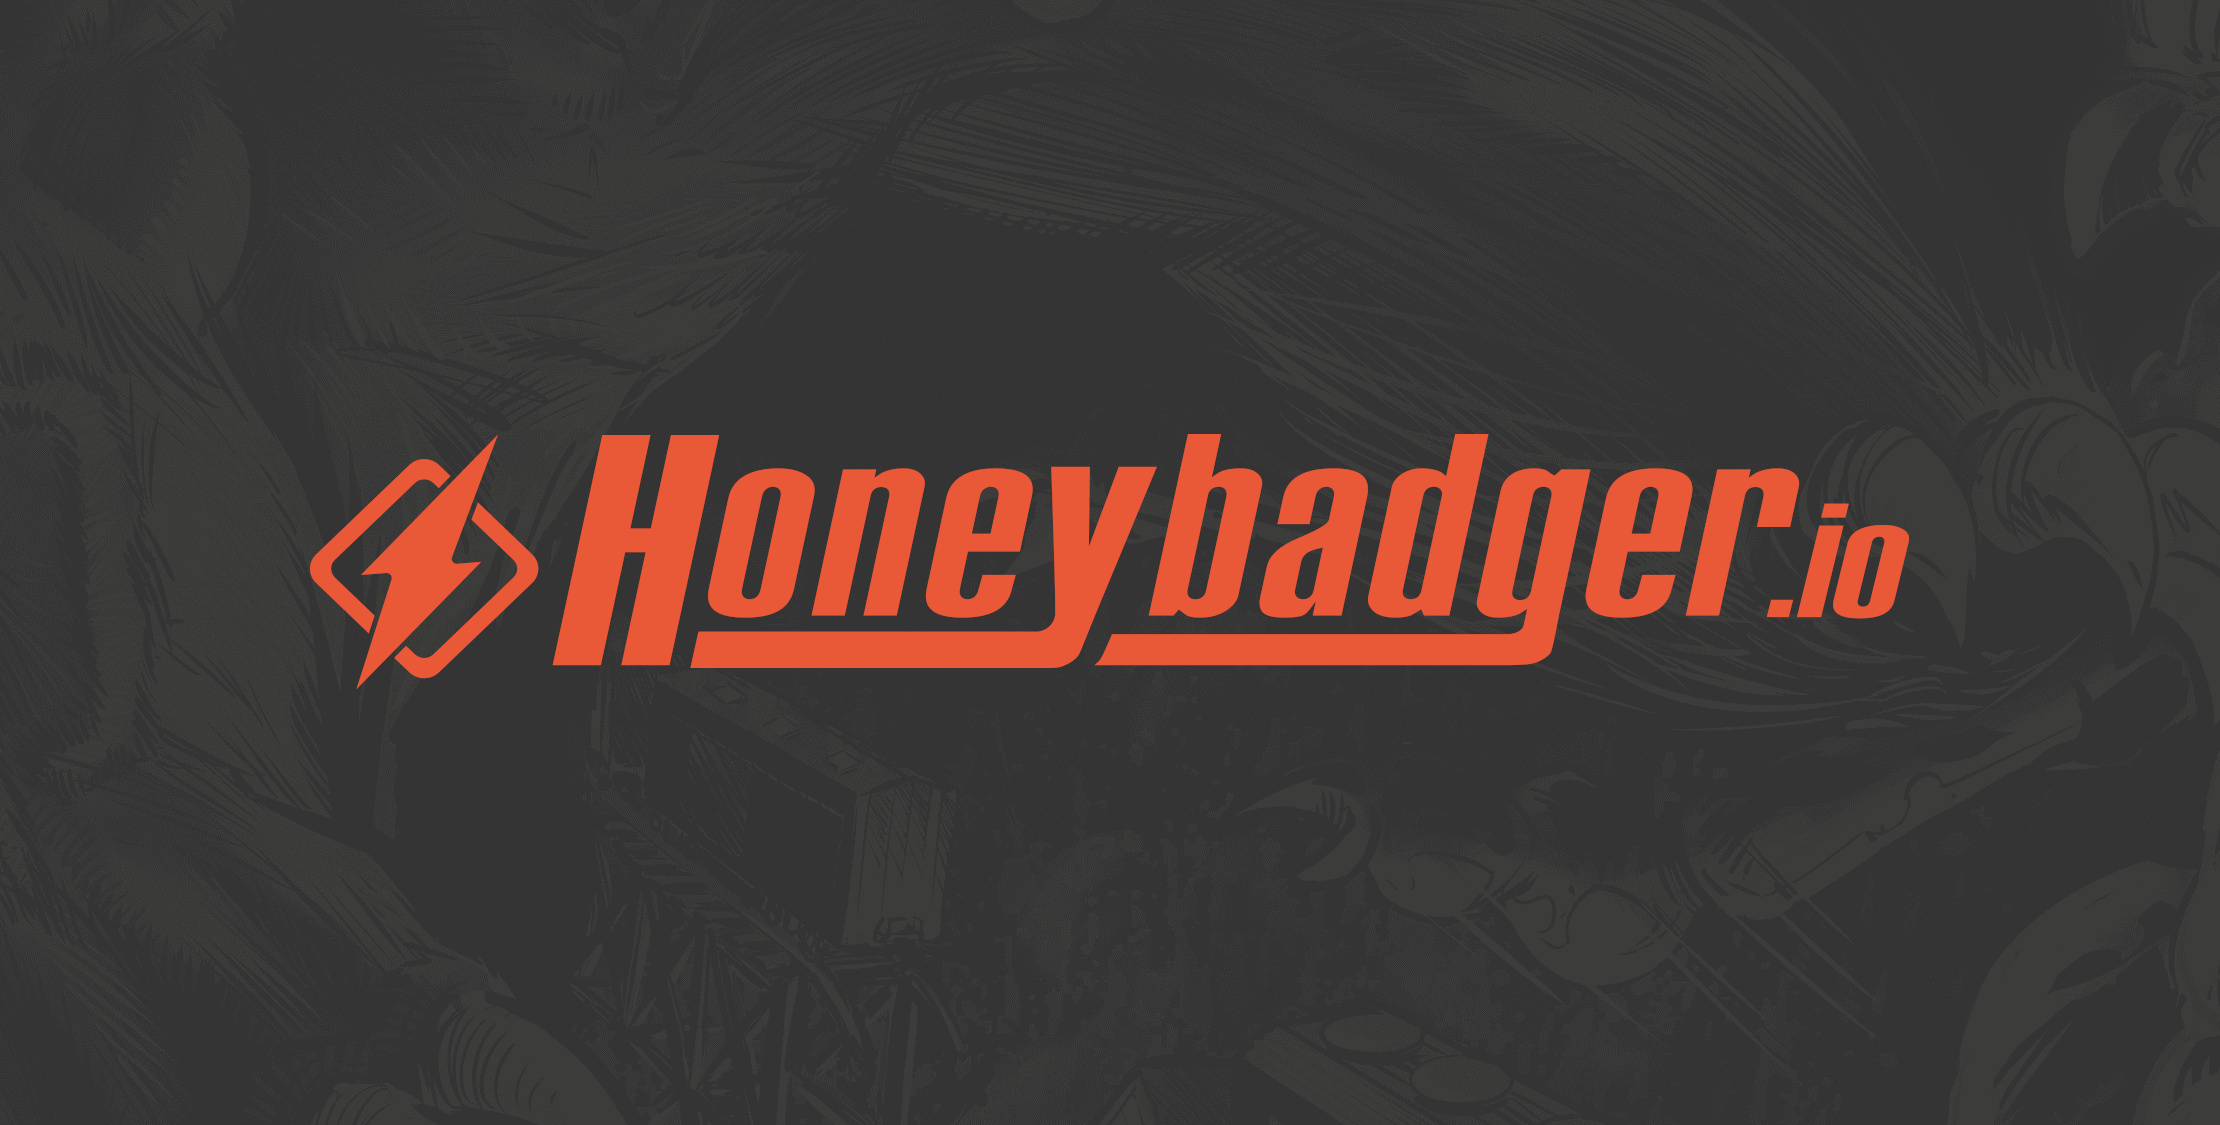 honeybadger-lead.png